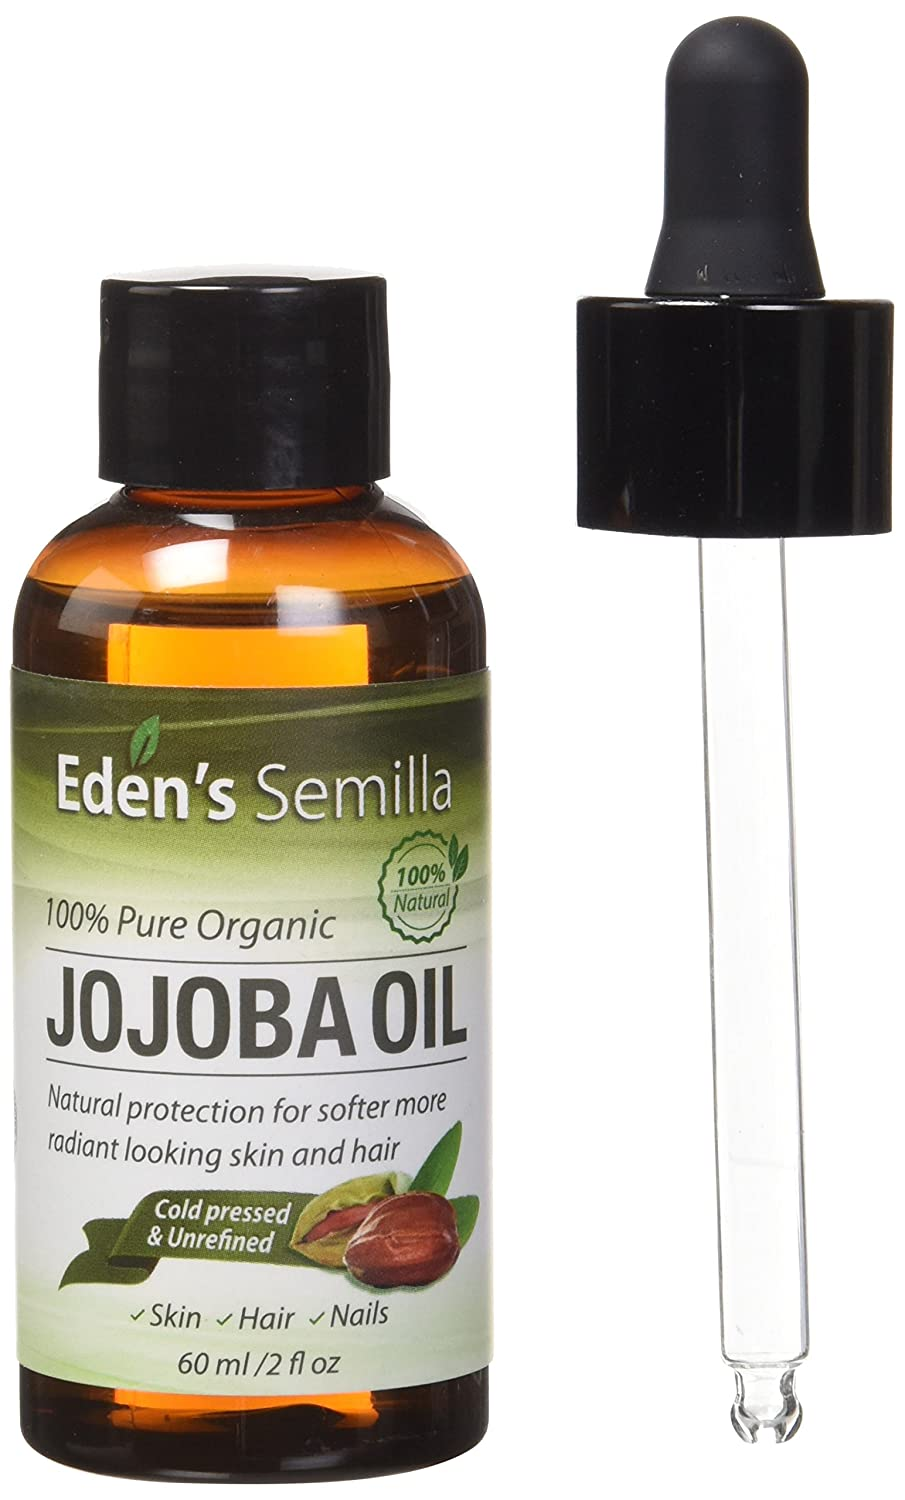 100% Pure Jojoba Oil - 120ml - Certified ORGANIC - Best Natural Oil Moisturiser for Radiant Looking Skin, Silky Smooth Hair and Strong Nails - Ideal For Sensitive Skin - All Round Protection Day & Night - Cold Pressed & Unrefined Eden's Semilla